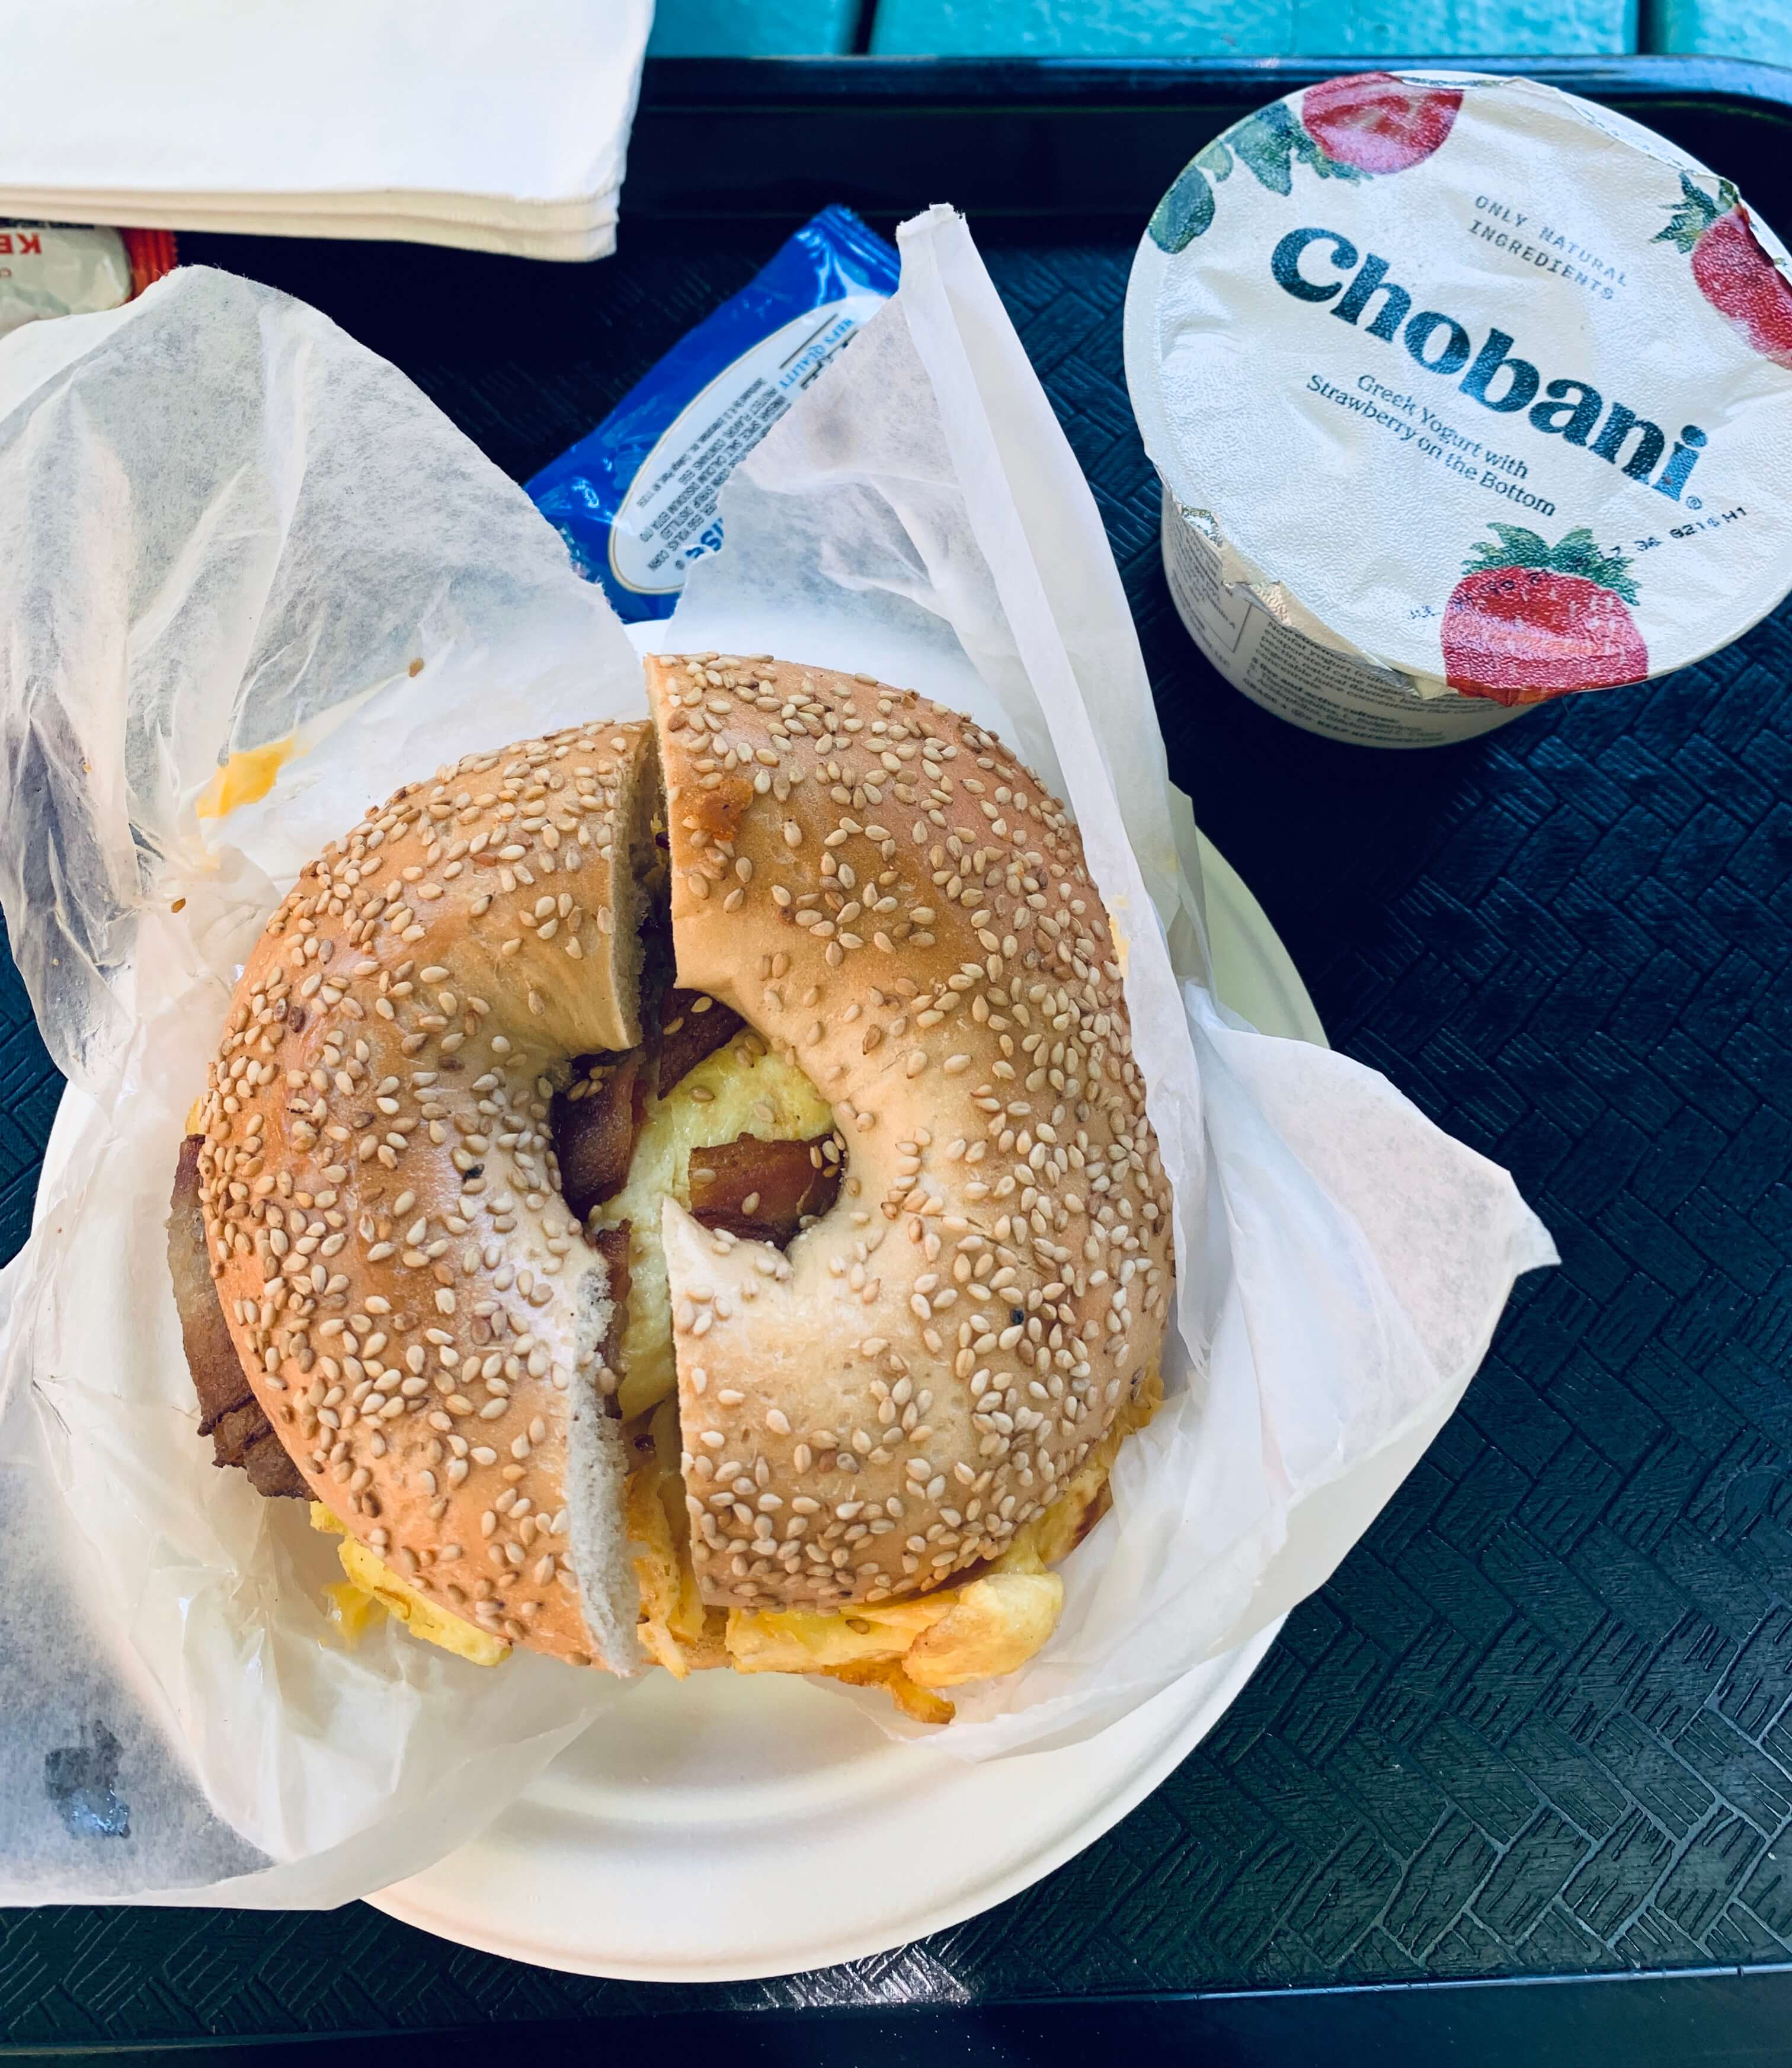 Bacon-and-egg-bagels-breakfast-HI-NYC-hostel